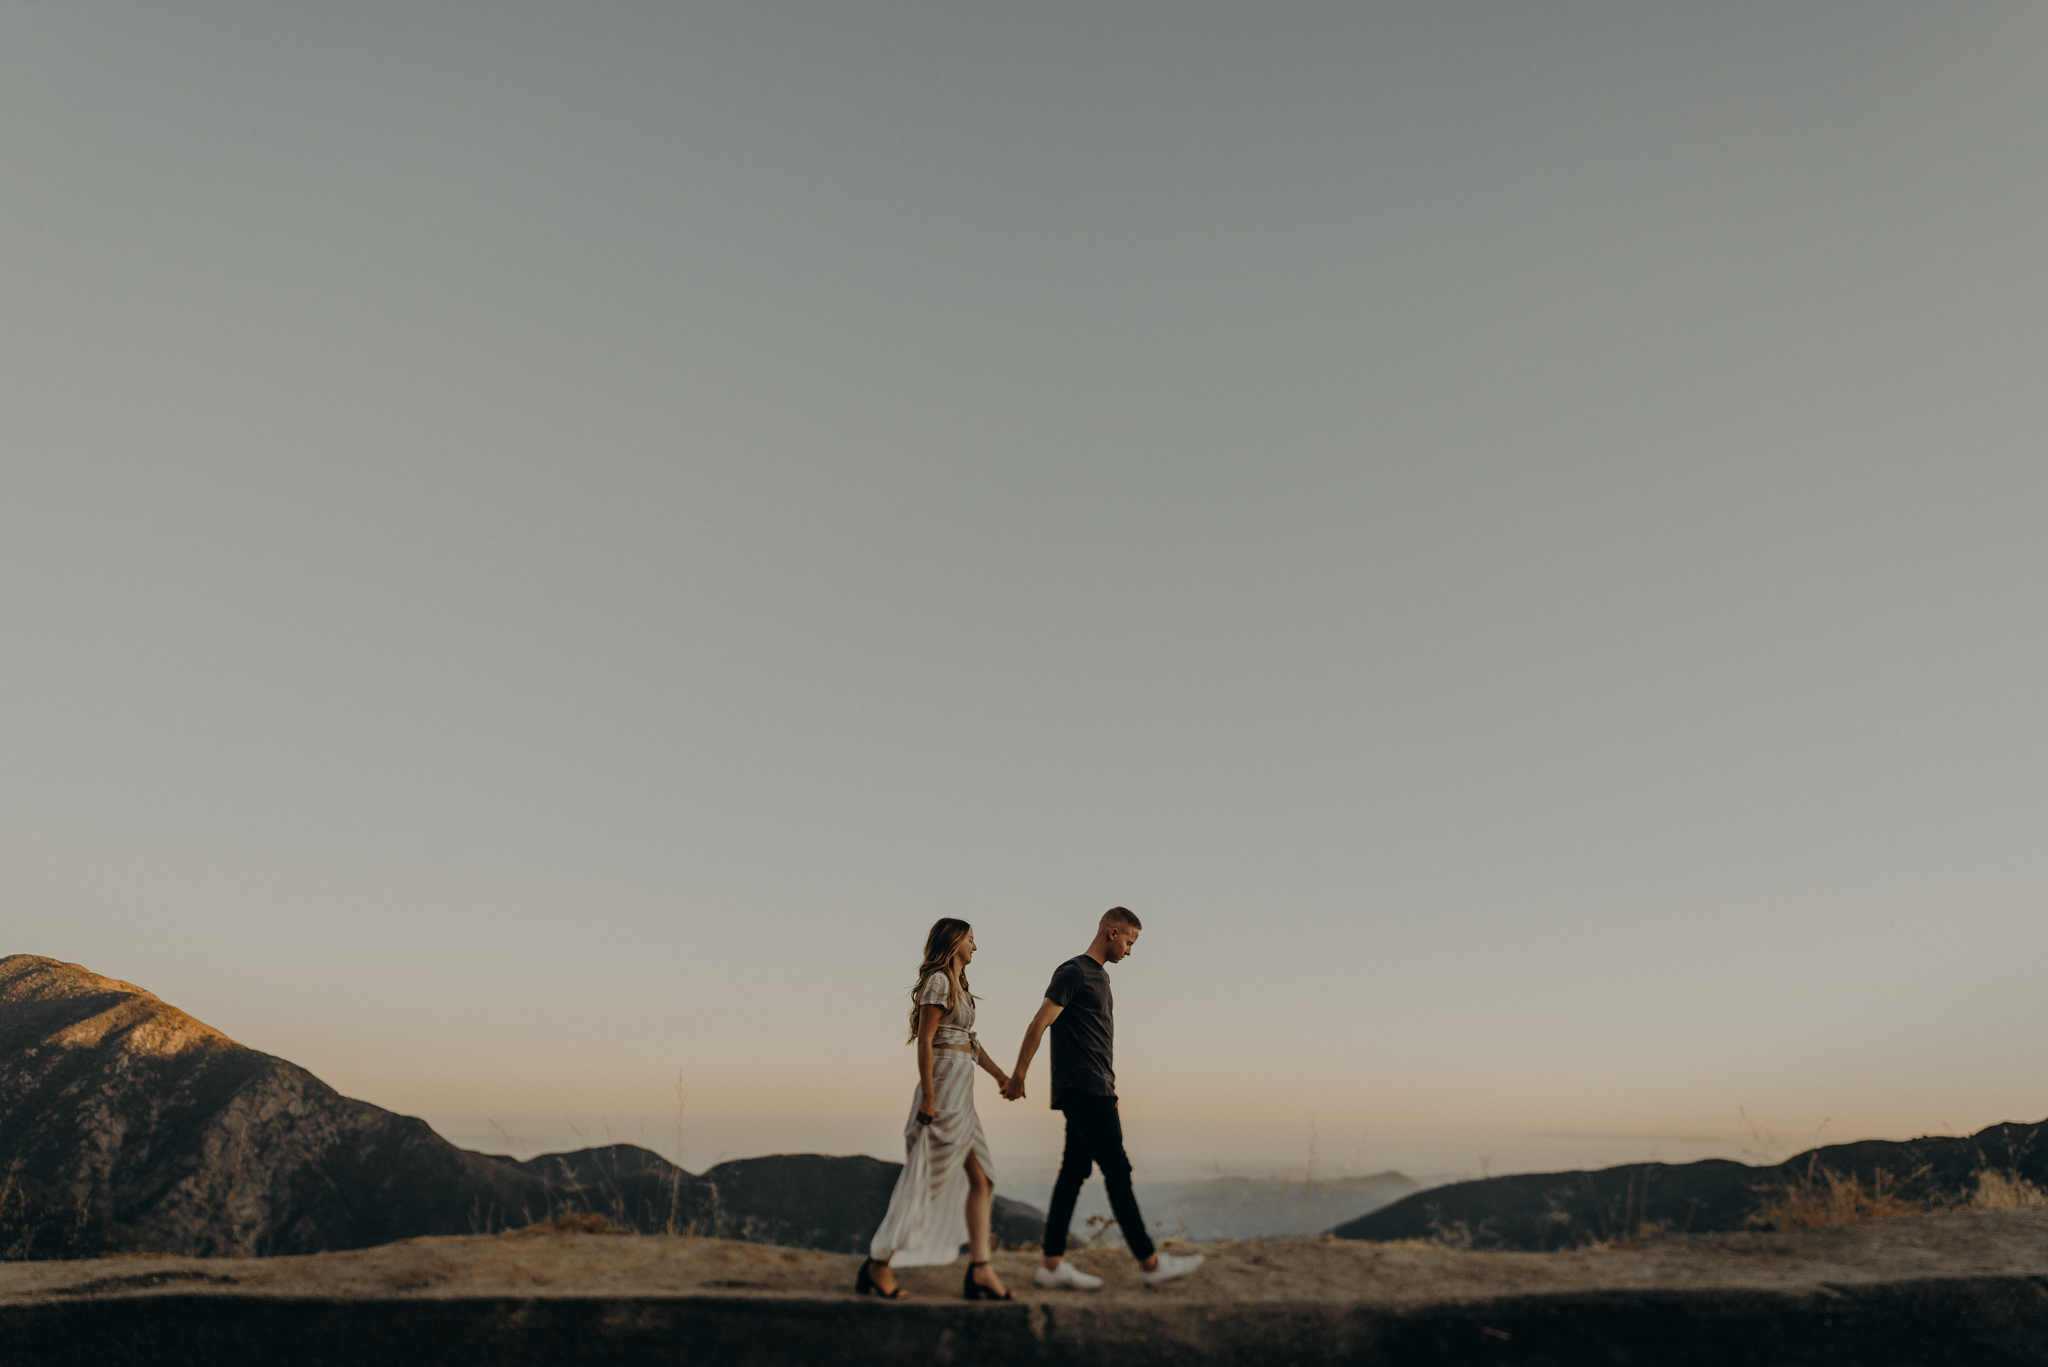 Isaiah + Taylor Photography - Los Angeles Forest Engagement Session - Laid back wedding photographer-006.jpg